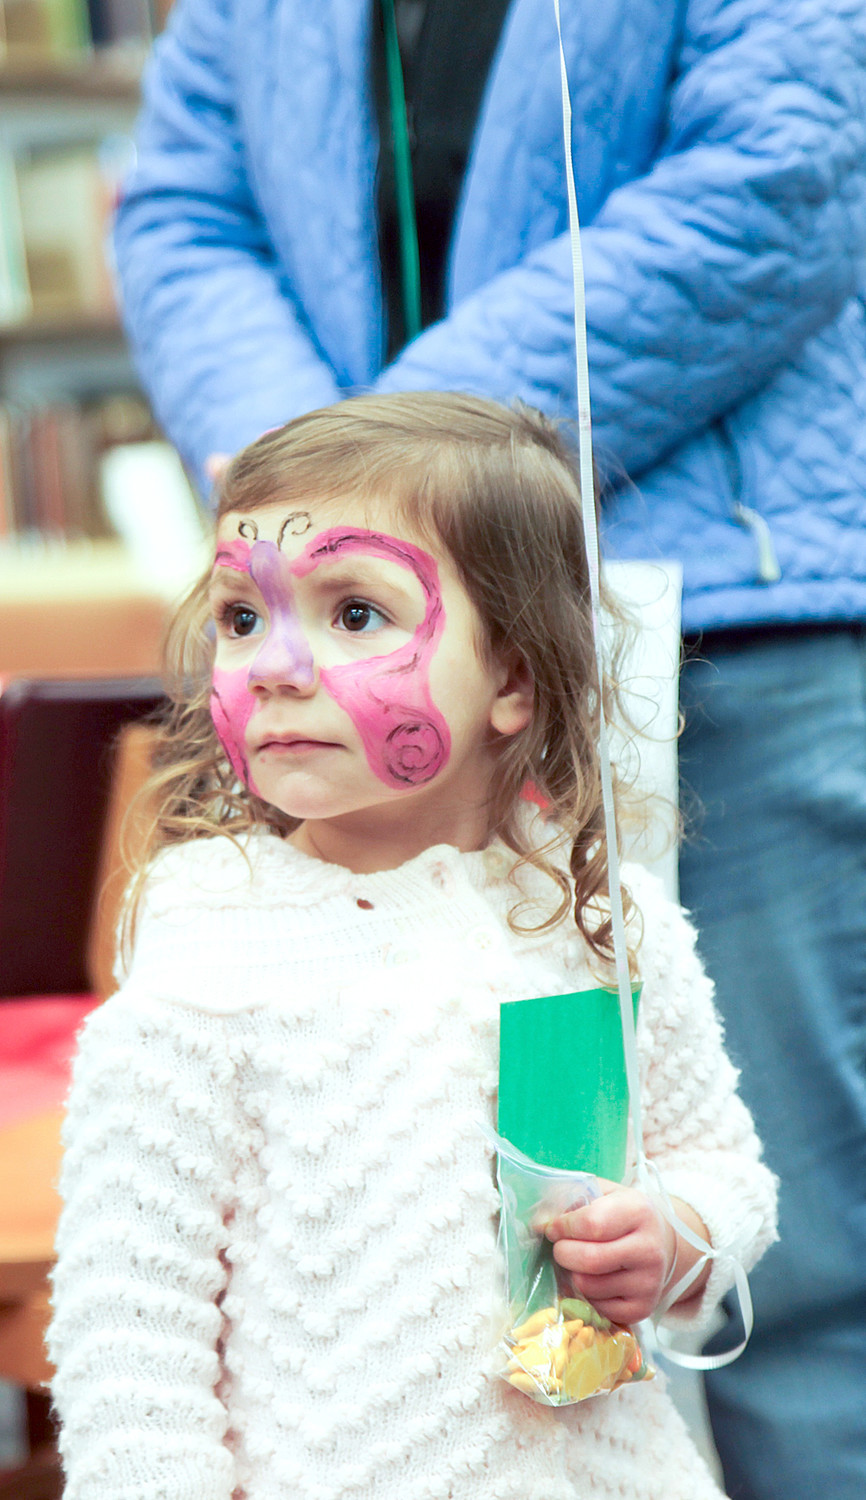 LITTLE AINSLEY PETERS, complete with her butterfly face paint, searches out her next next adventure at the Dr. Seuss celebration.